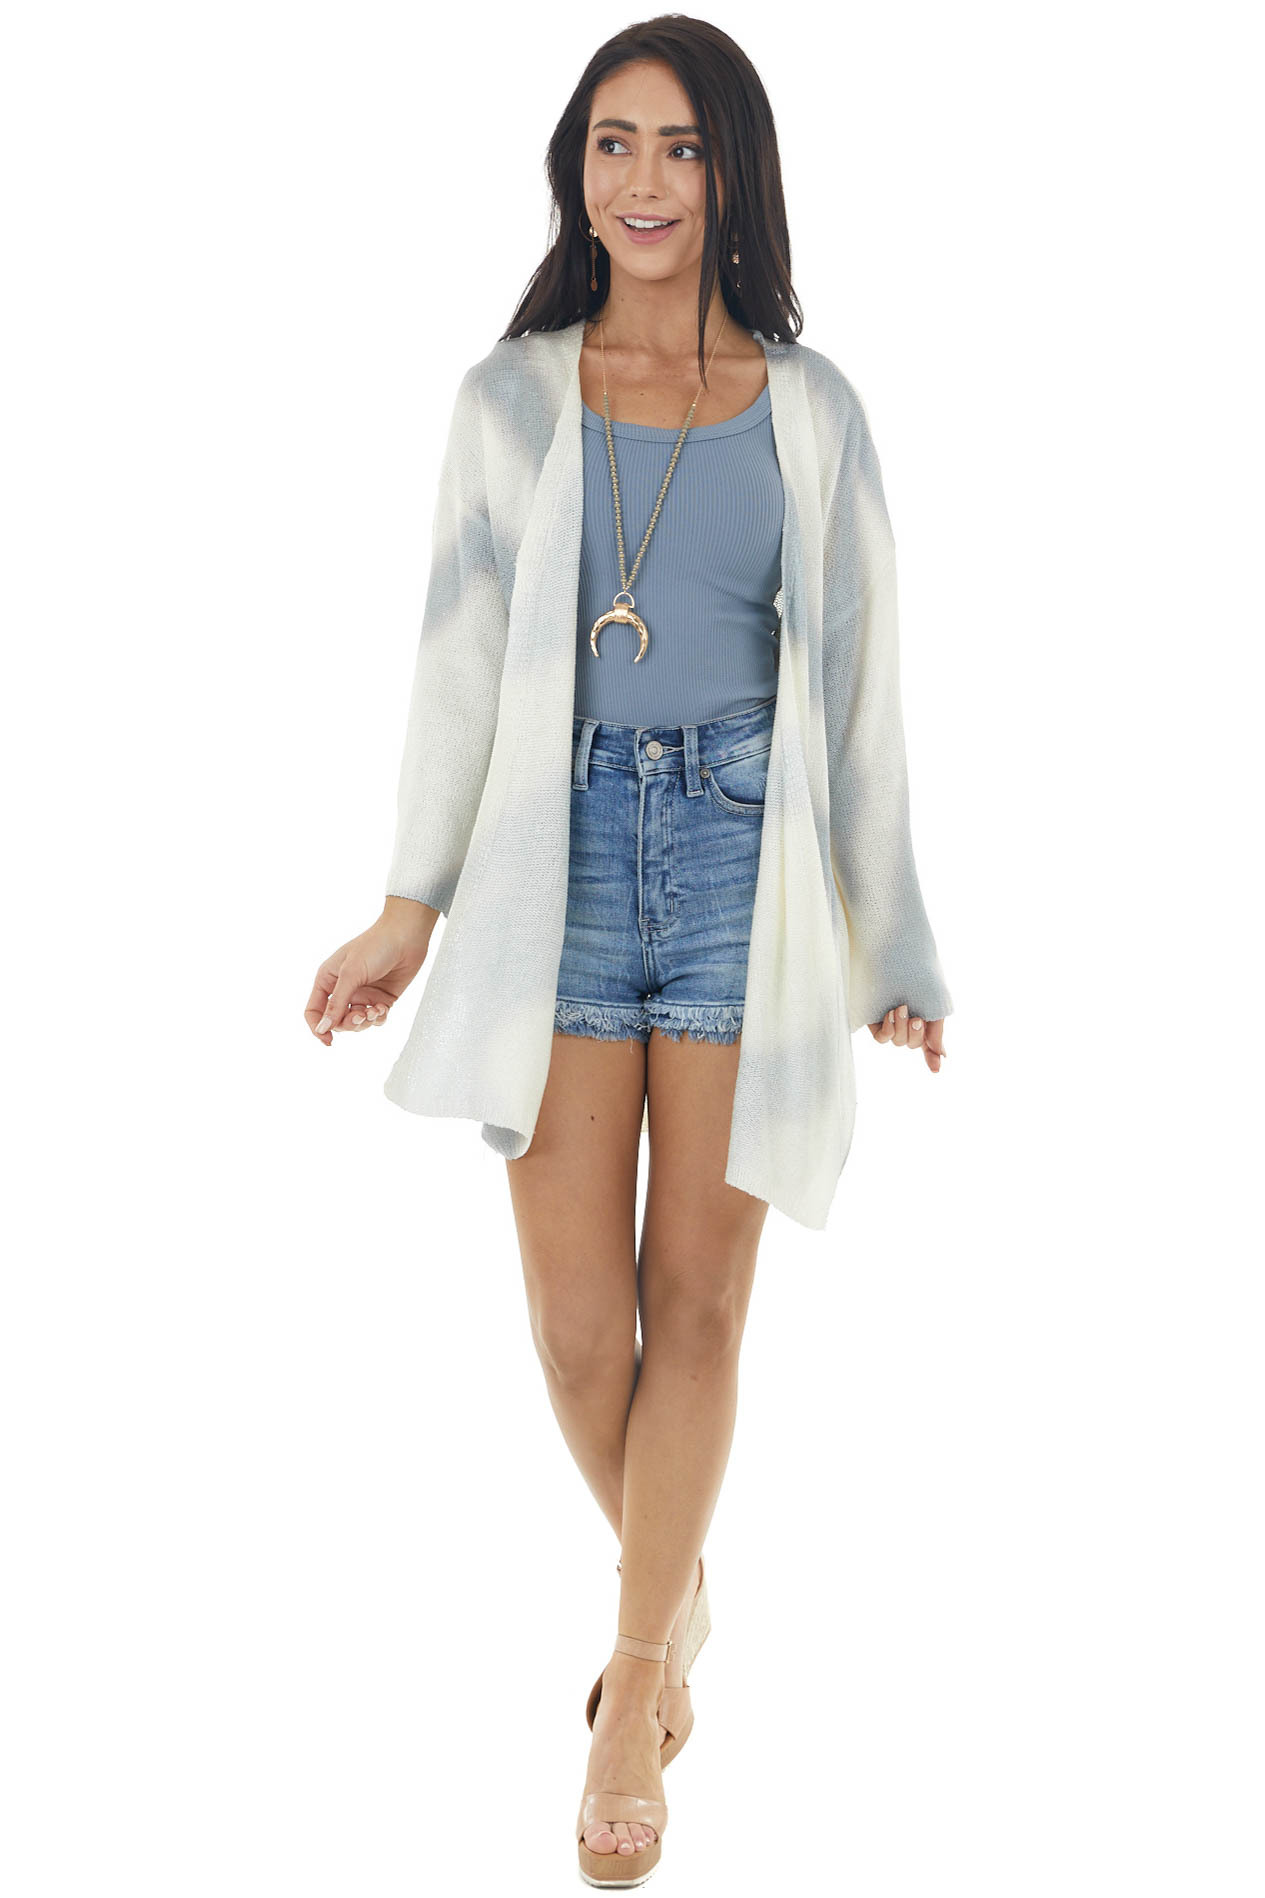 Cream and Pastel Blue Striped Tie Dye Open Front Cardigan